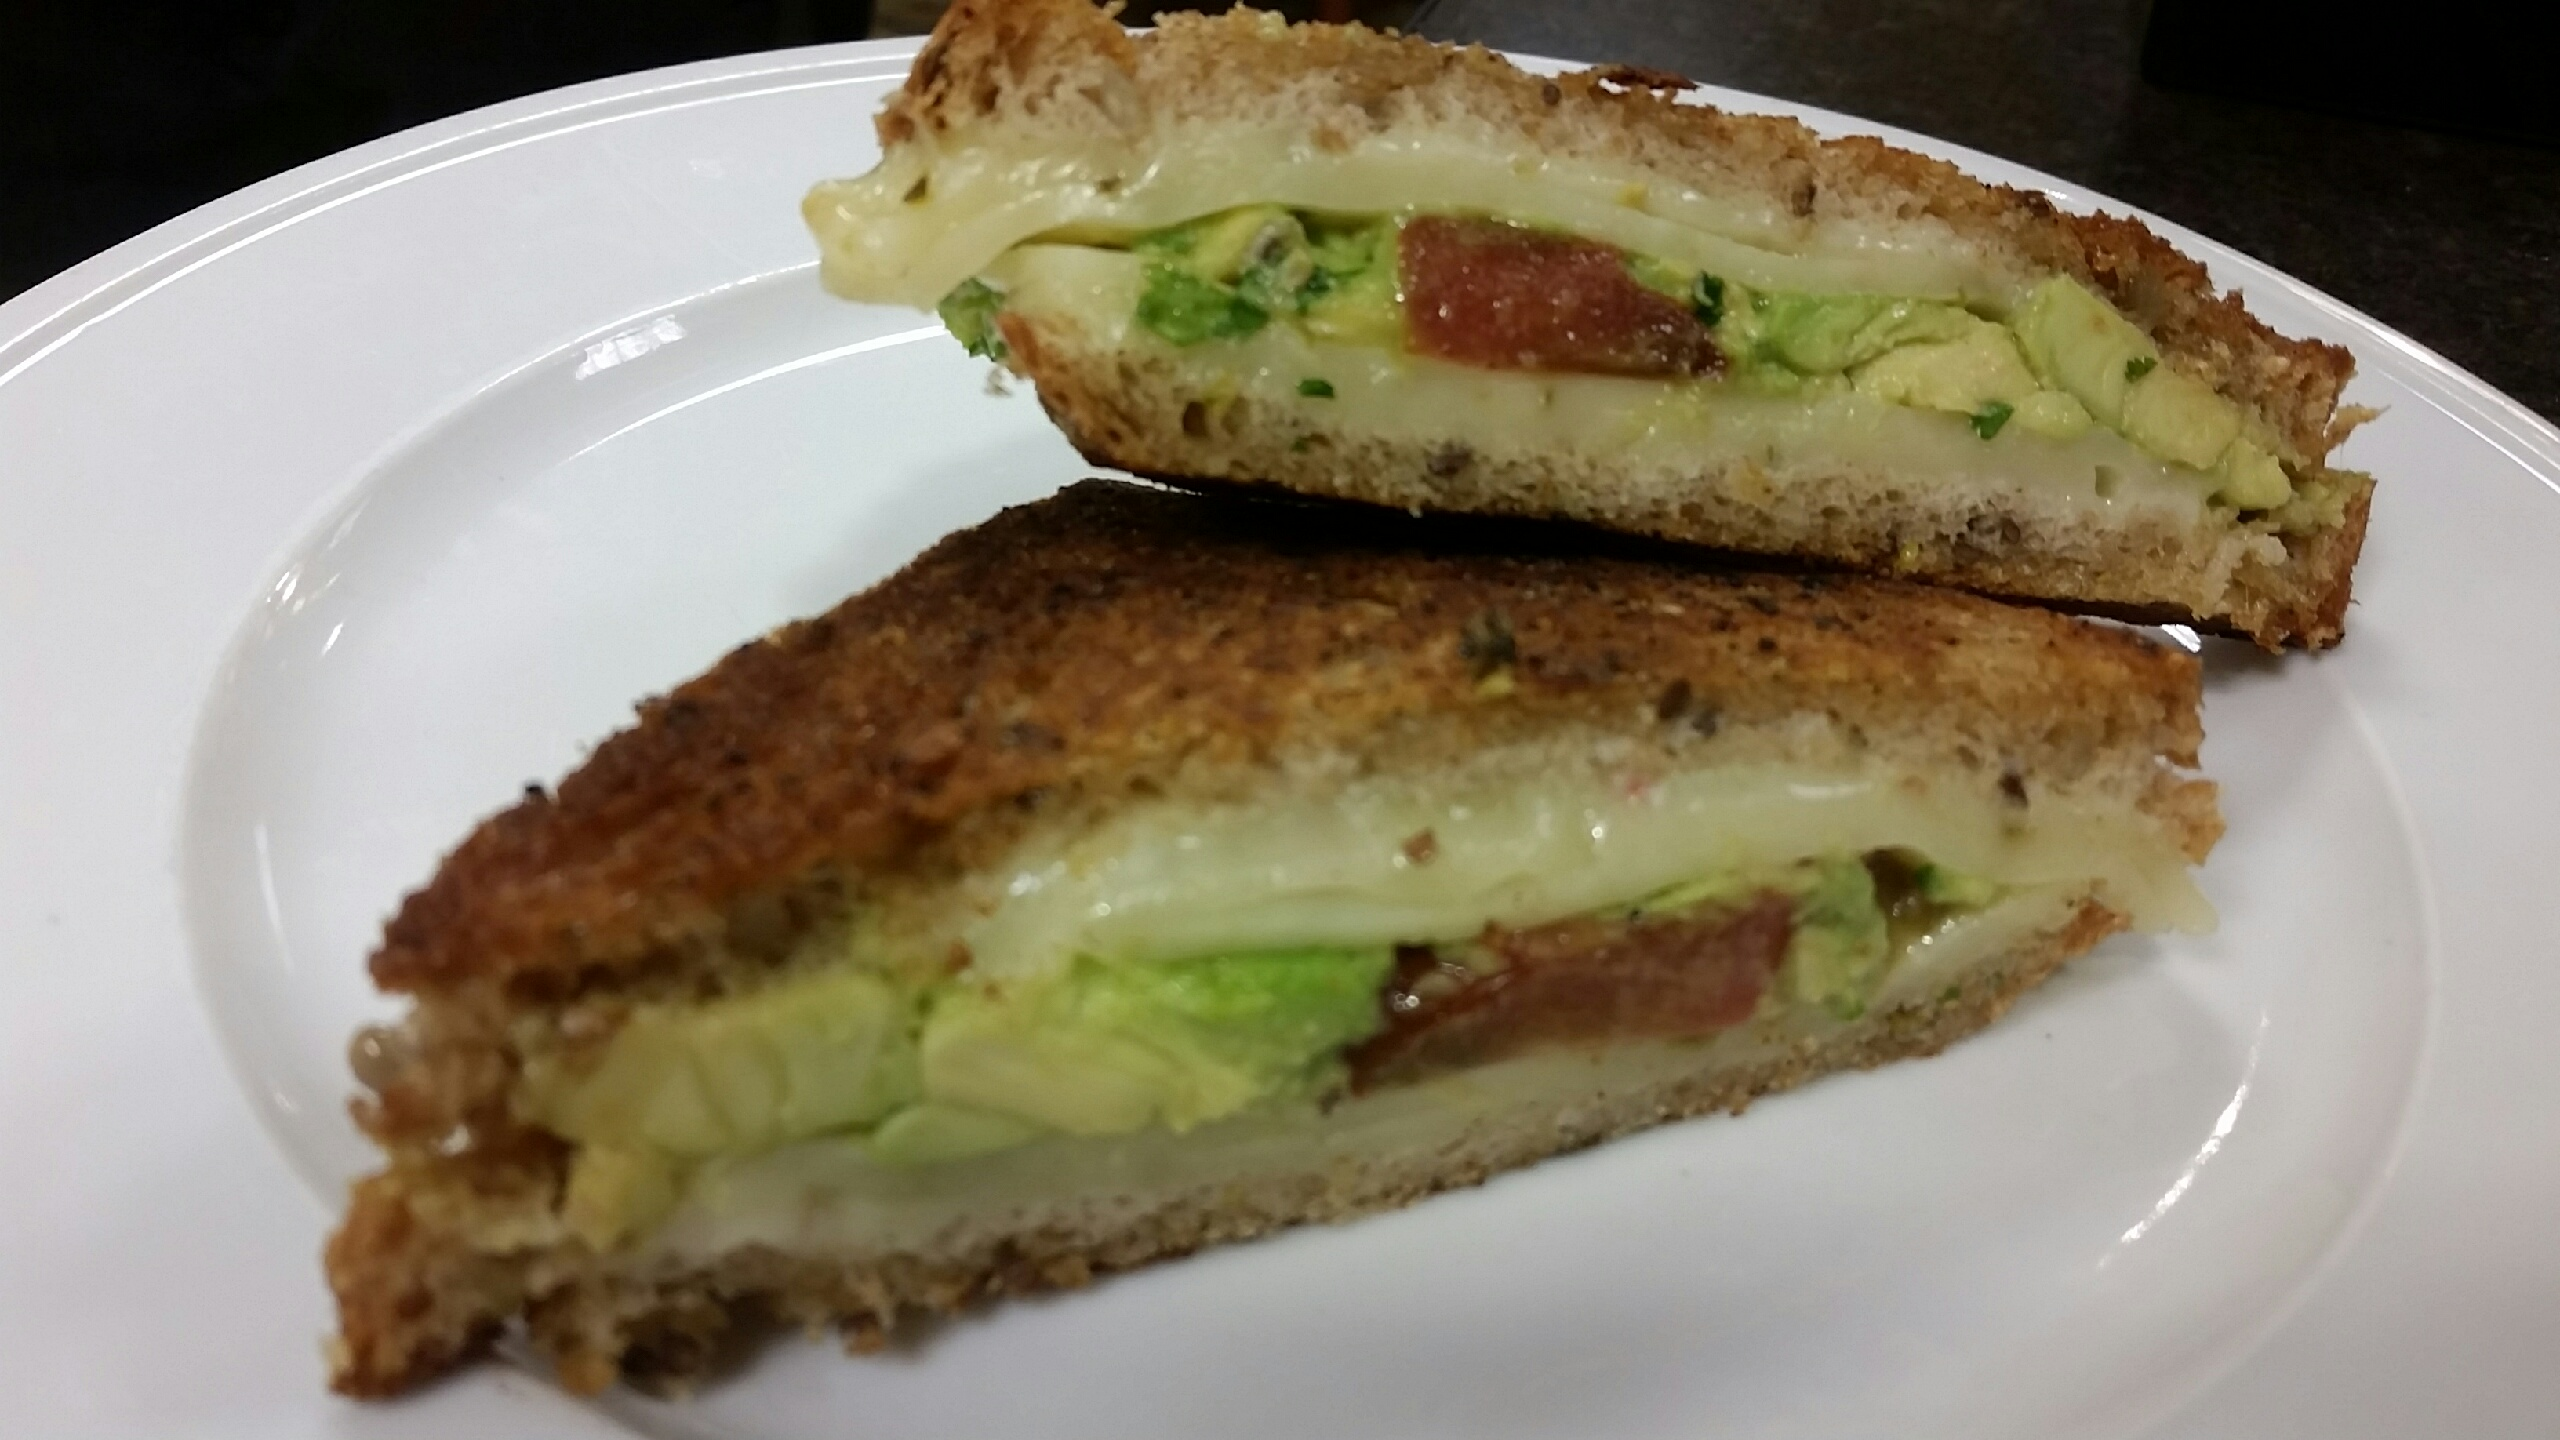 Cheesy grilled cheese reinvented with avocado